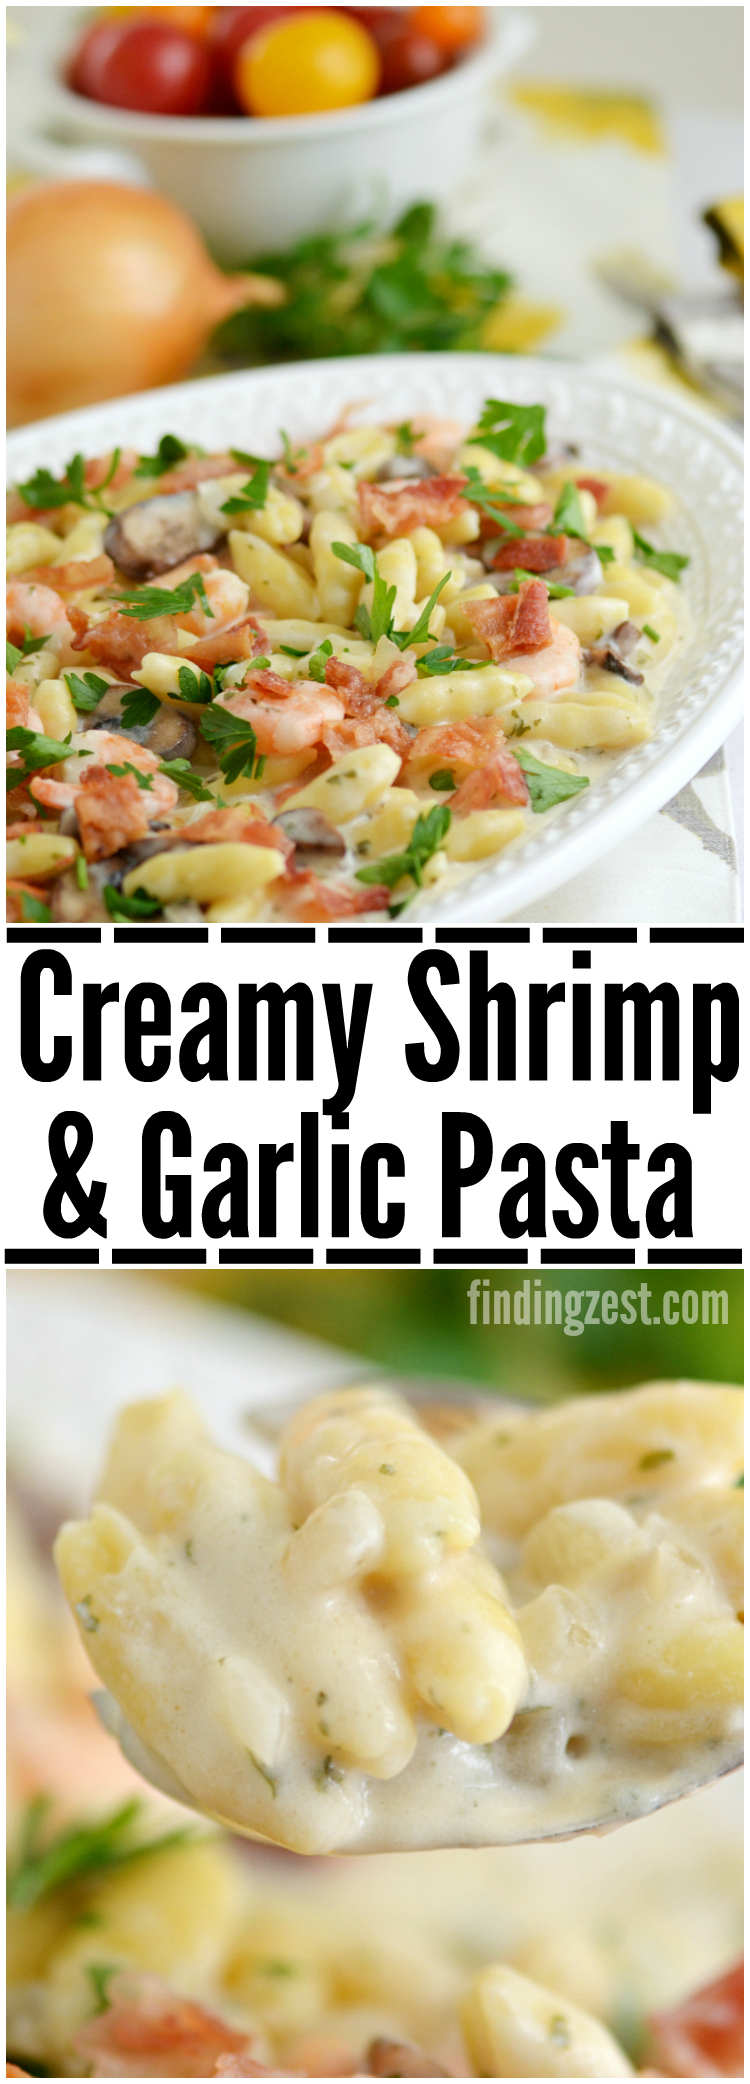 Creamy Shrimp and Garlic Pasta: A perfect weeknight recipe that can be on your table in under 30 minutes!